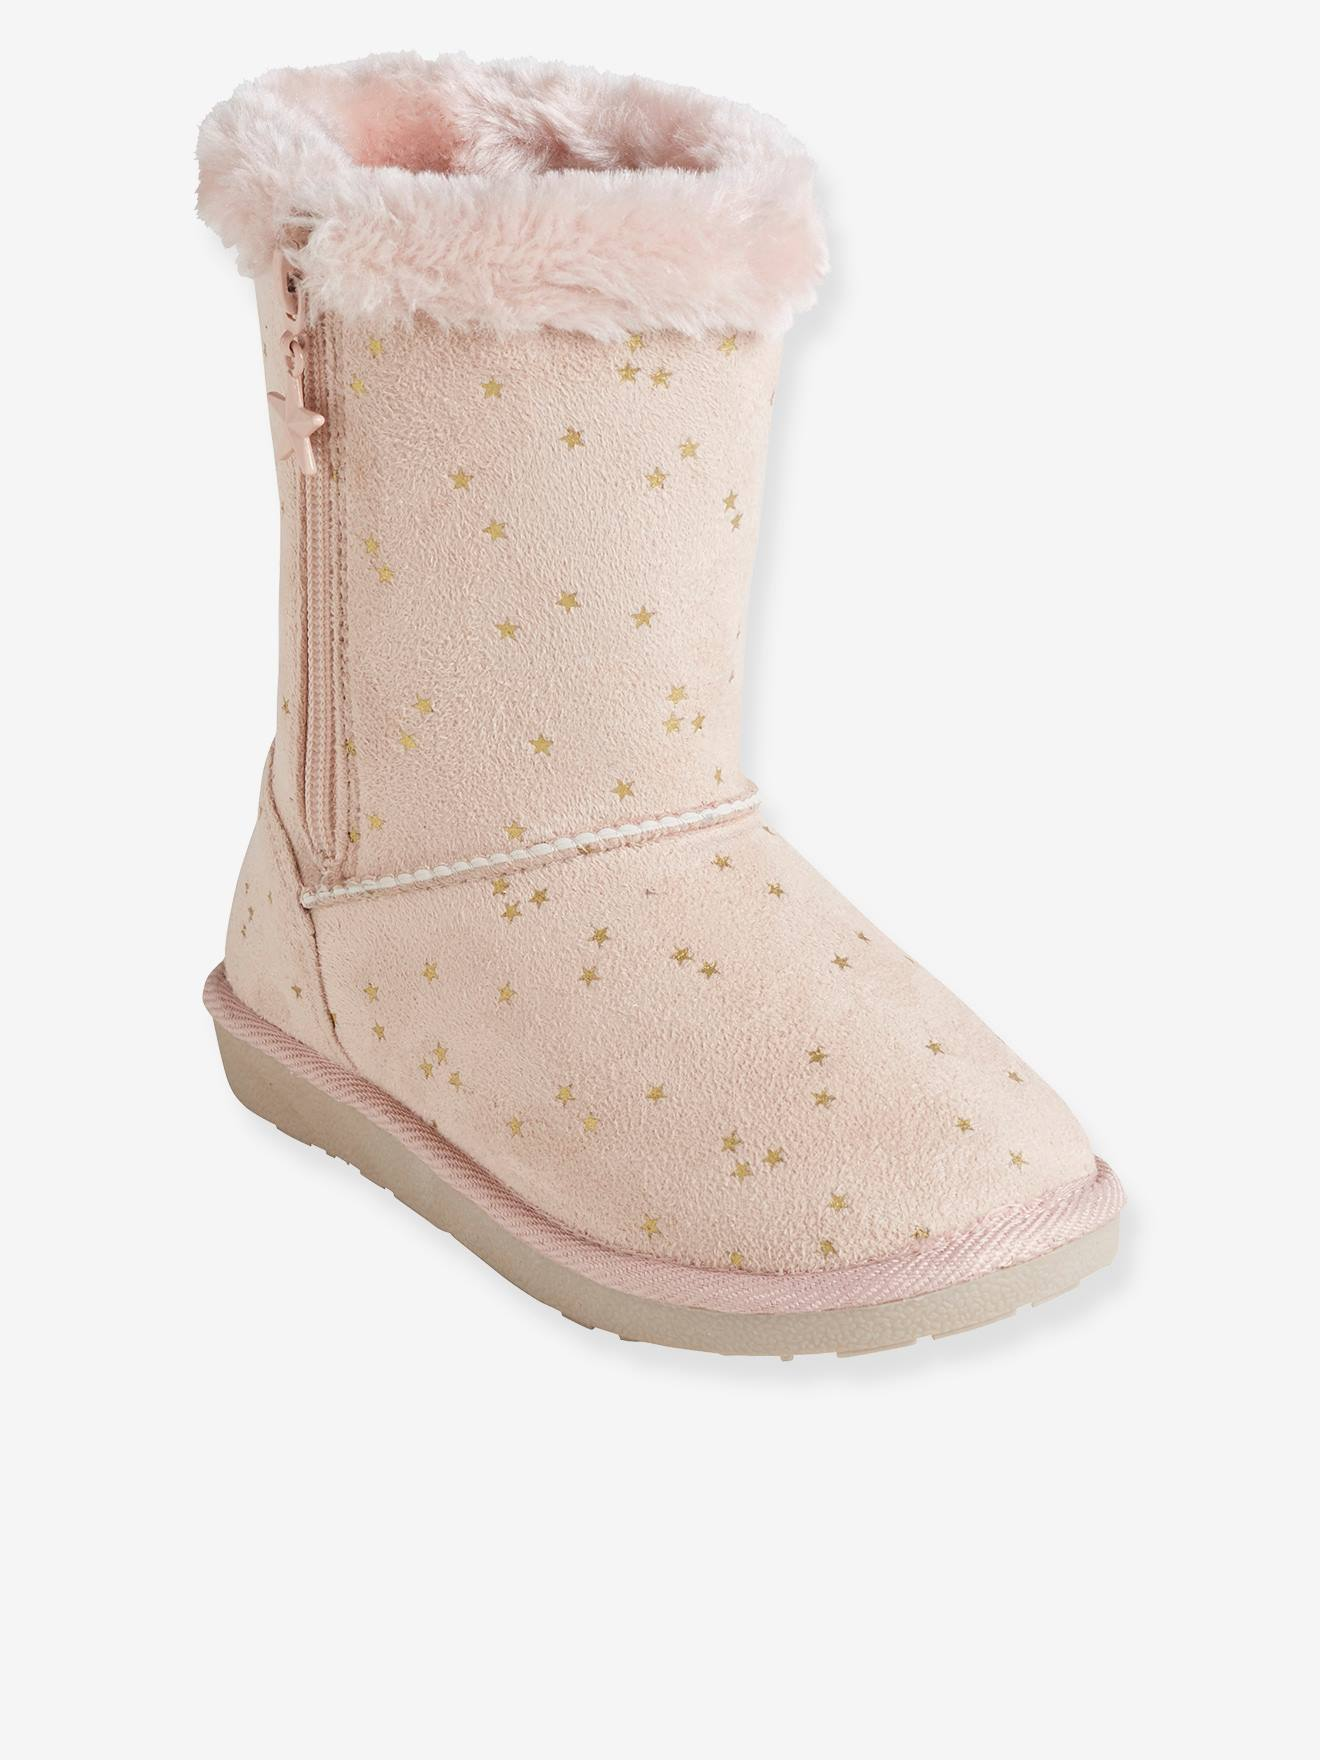 Baby Girls Light Pink Booties with Rose on Toes 5 Preemie and Newborn Sizes